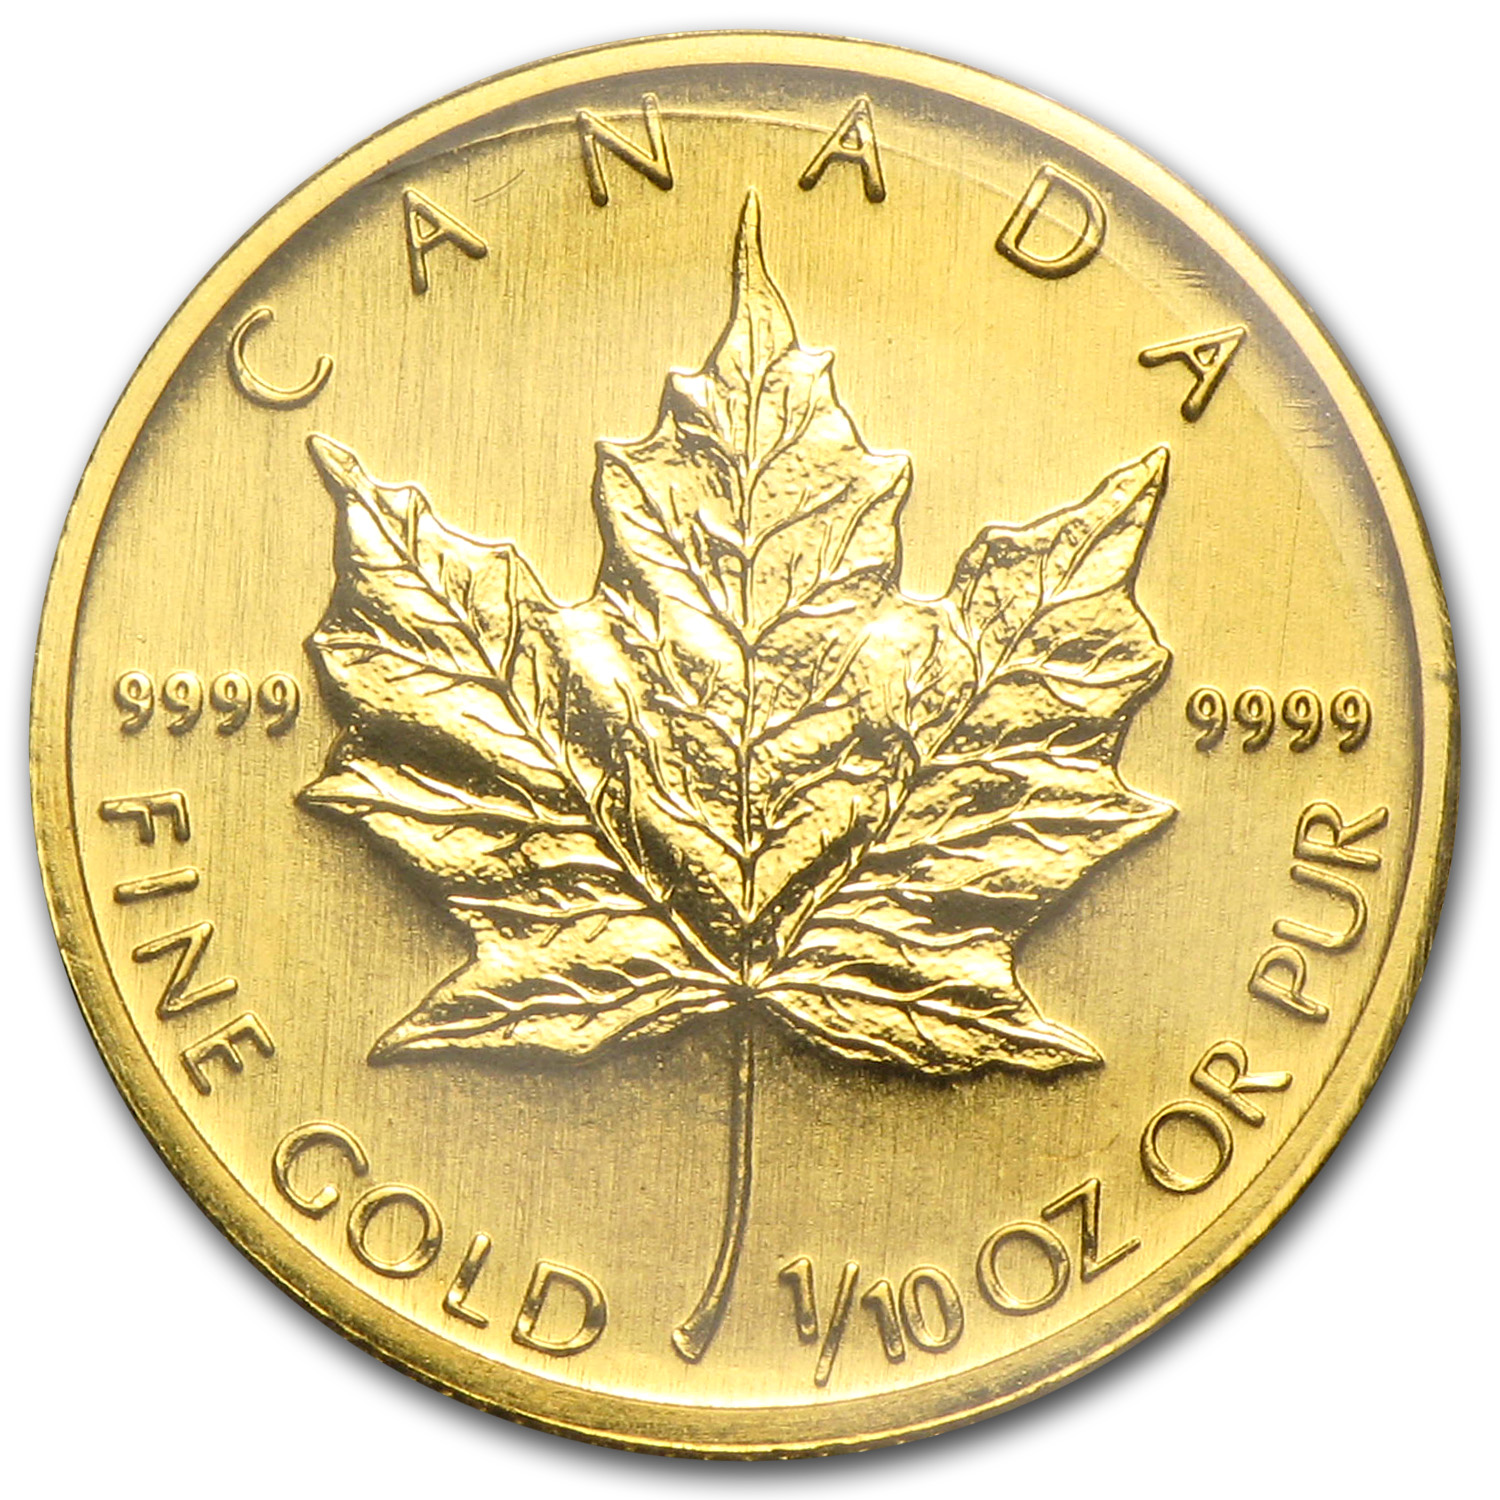 2006 Canada 1/10 oz Gold Maple Leaf BU